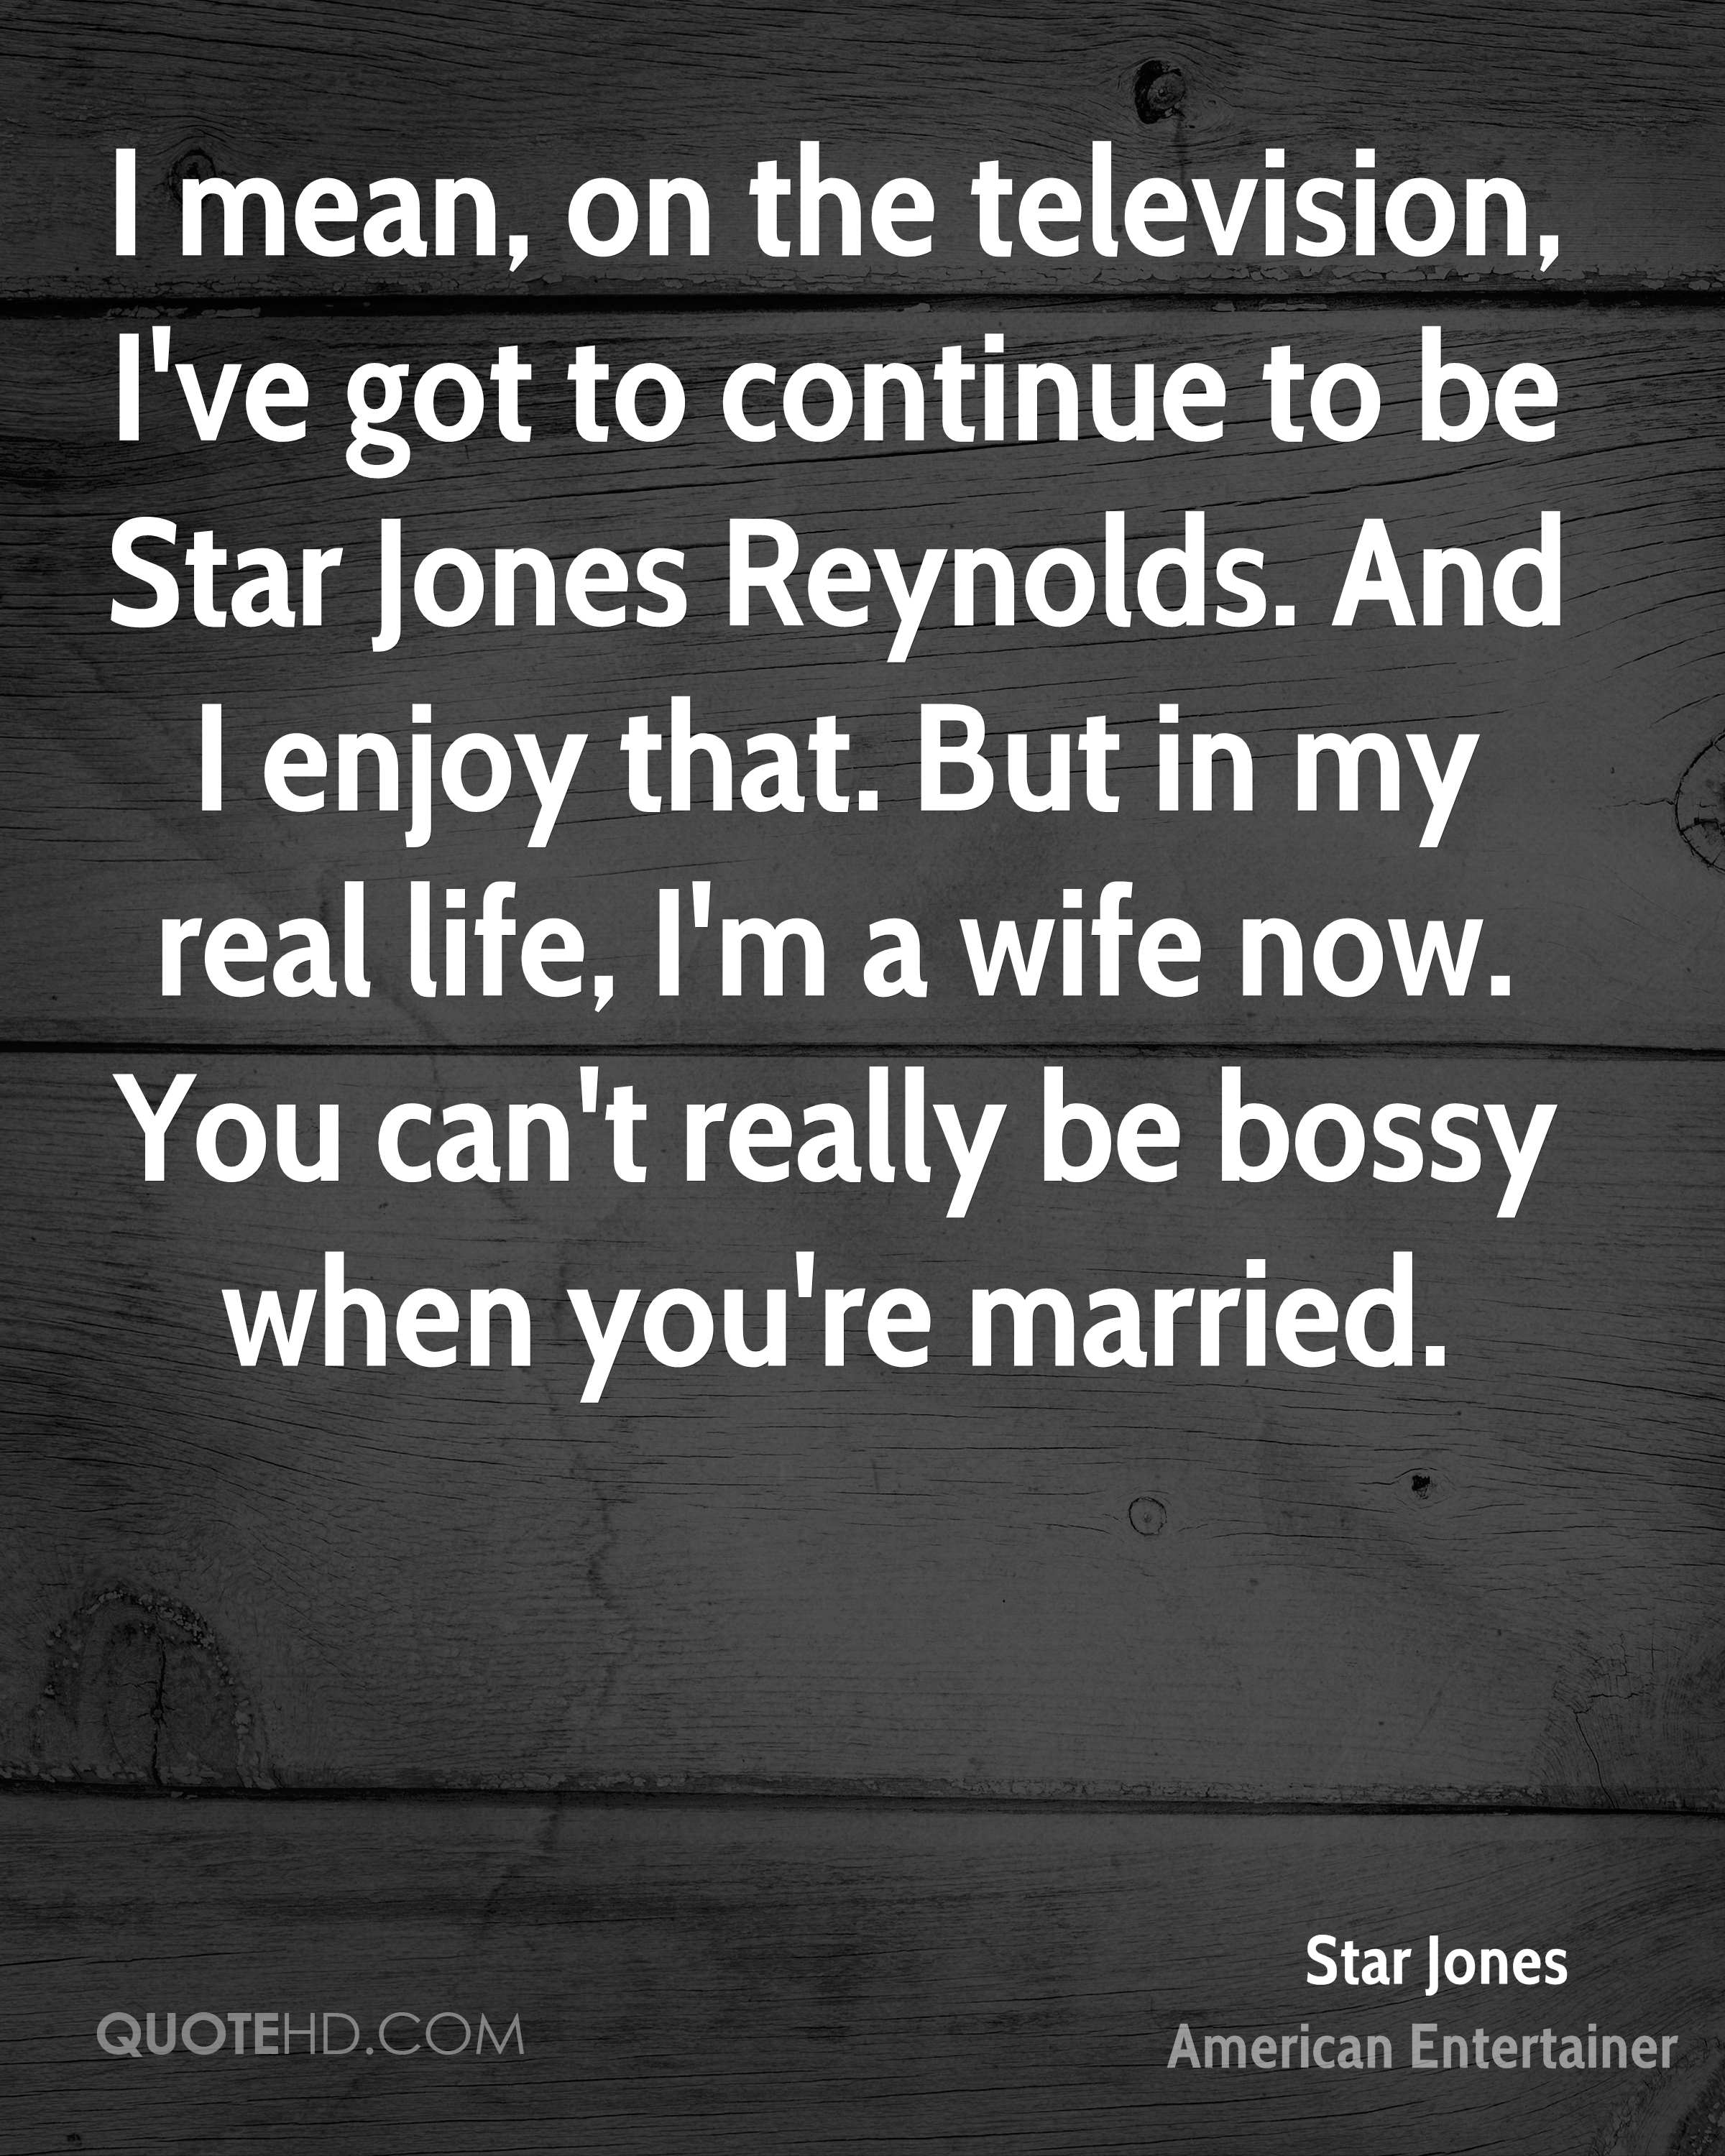 I mean, on the television, I've got to continue to be Star Jones Reynolds. And I enjoy that. But in my real life, I'm a wife now. You can't really be bossy when you're married.